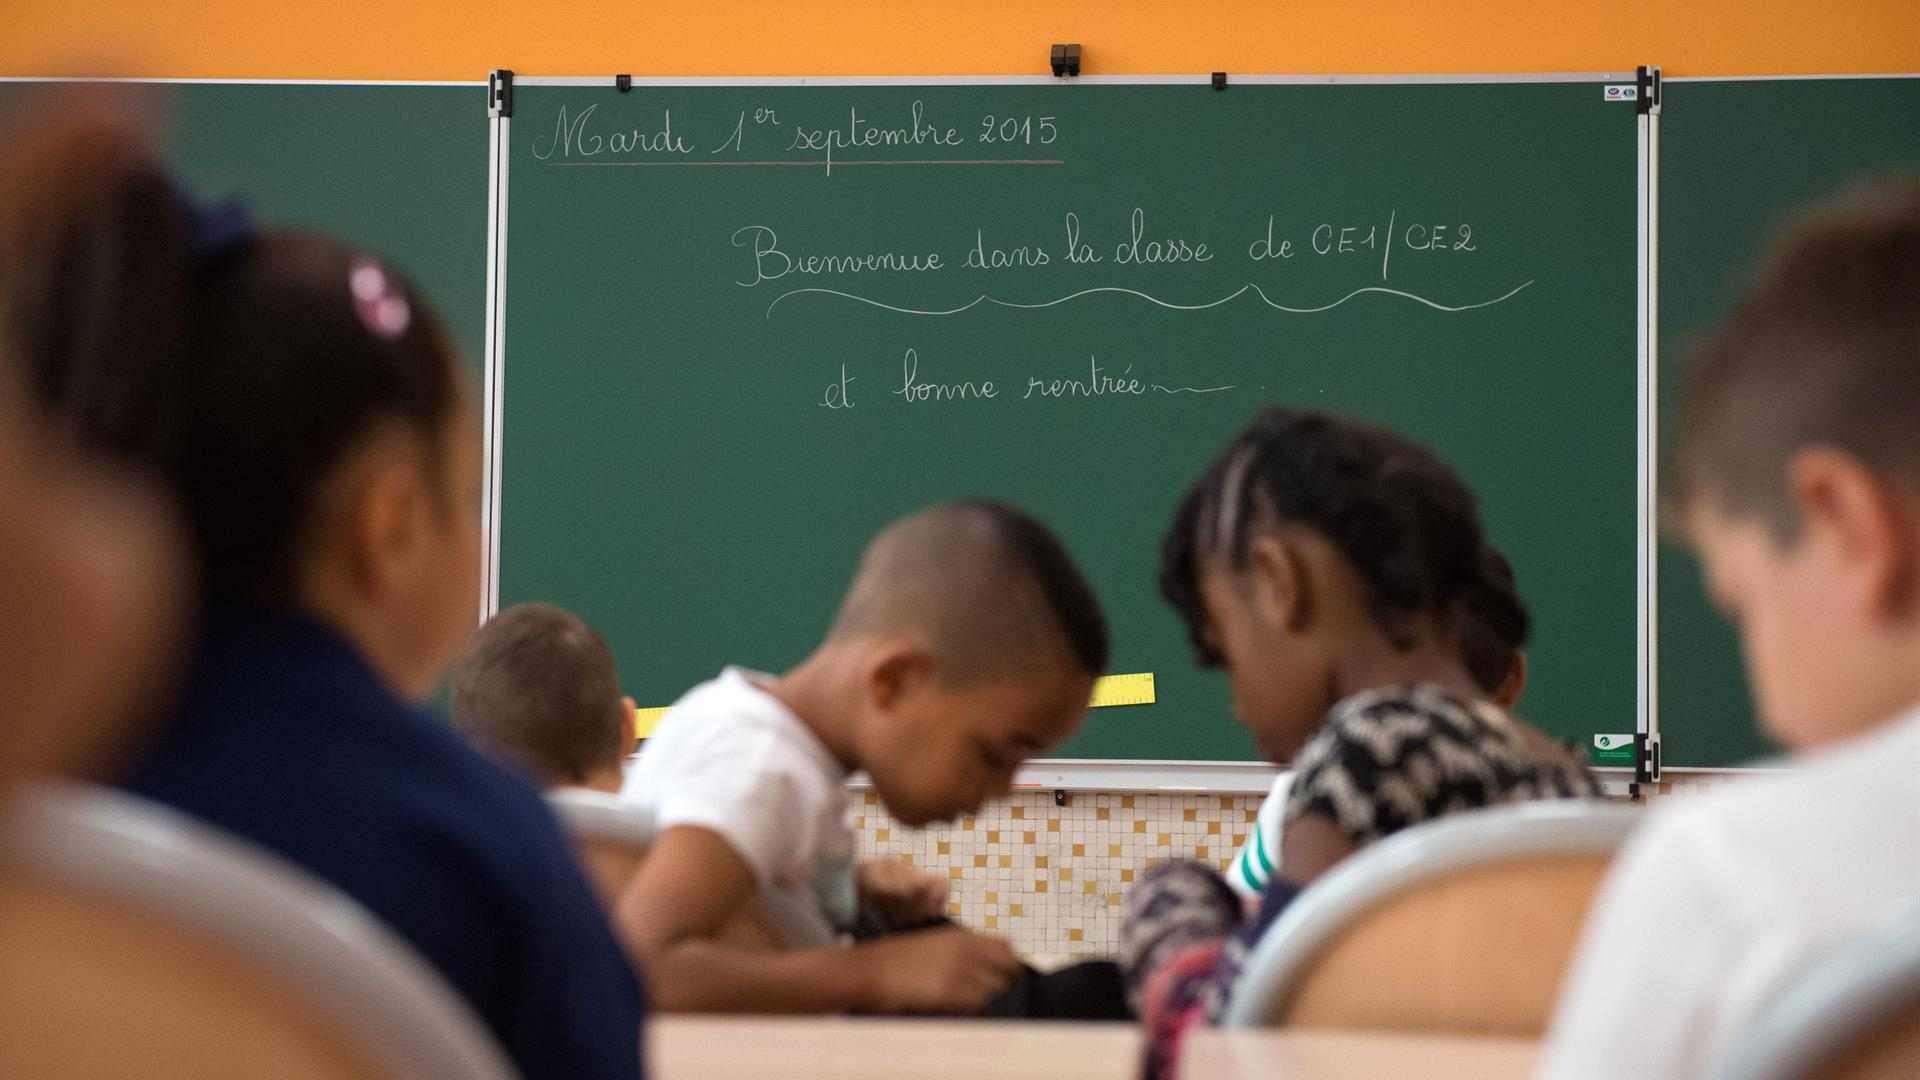 Scuola BERTRAND LANGLOIS:AFP:Getty Images